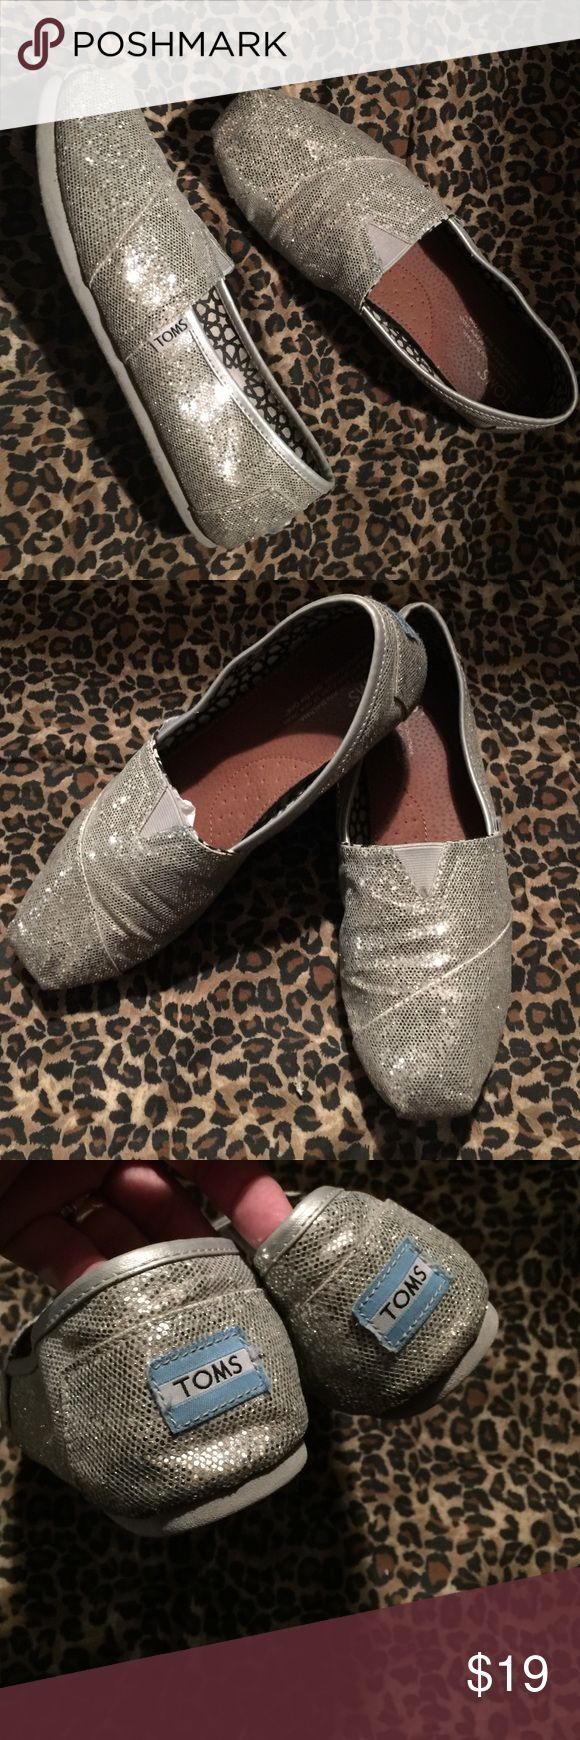 Shiny silver sparkle glitter TOMS canvas slip ons Lots of wear left in these! Worn just a handful of times! Great condition these are a women's size W9 (9-wide) pair of silver sparkly glitter Toms slip on canvas shoes!! Super comfy & super shiny pretty!! Stylish & perfect to throw on in the fall!! 🍁🍂🍁🍂 Any questions, please ask!! Thank you for looking & Happy Poshing 😊✌🏻️💕☀️🍁🍂😍 TOMS Shoes Flats & Loafers